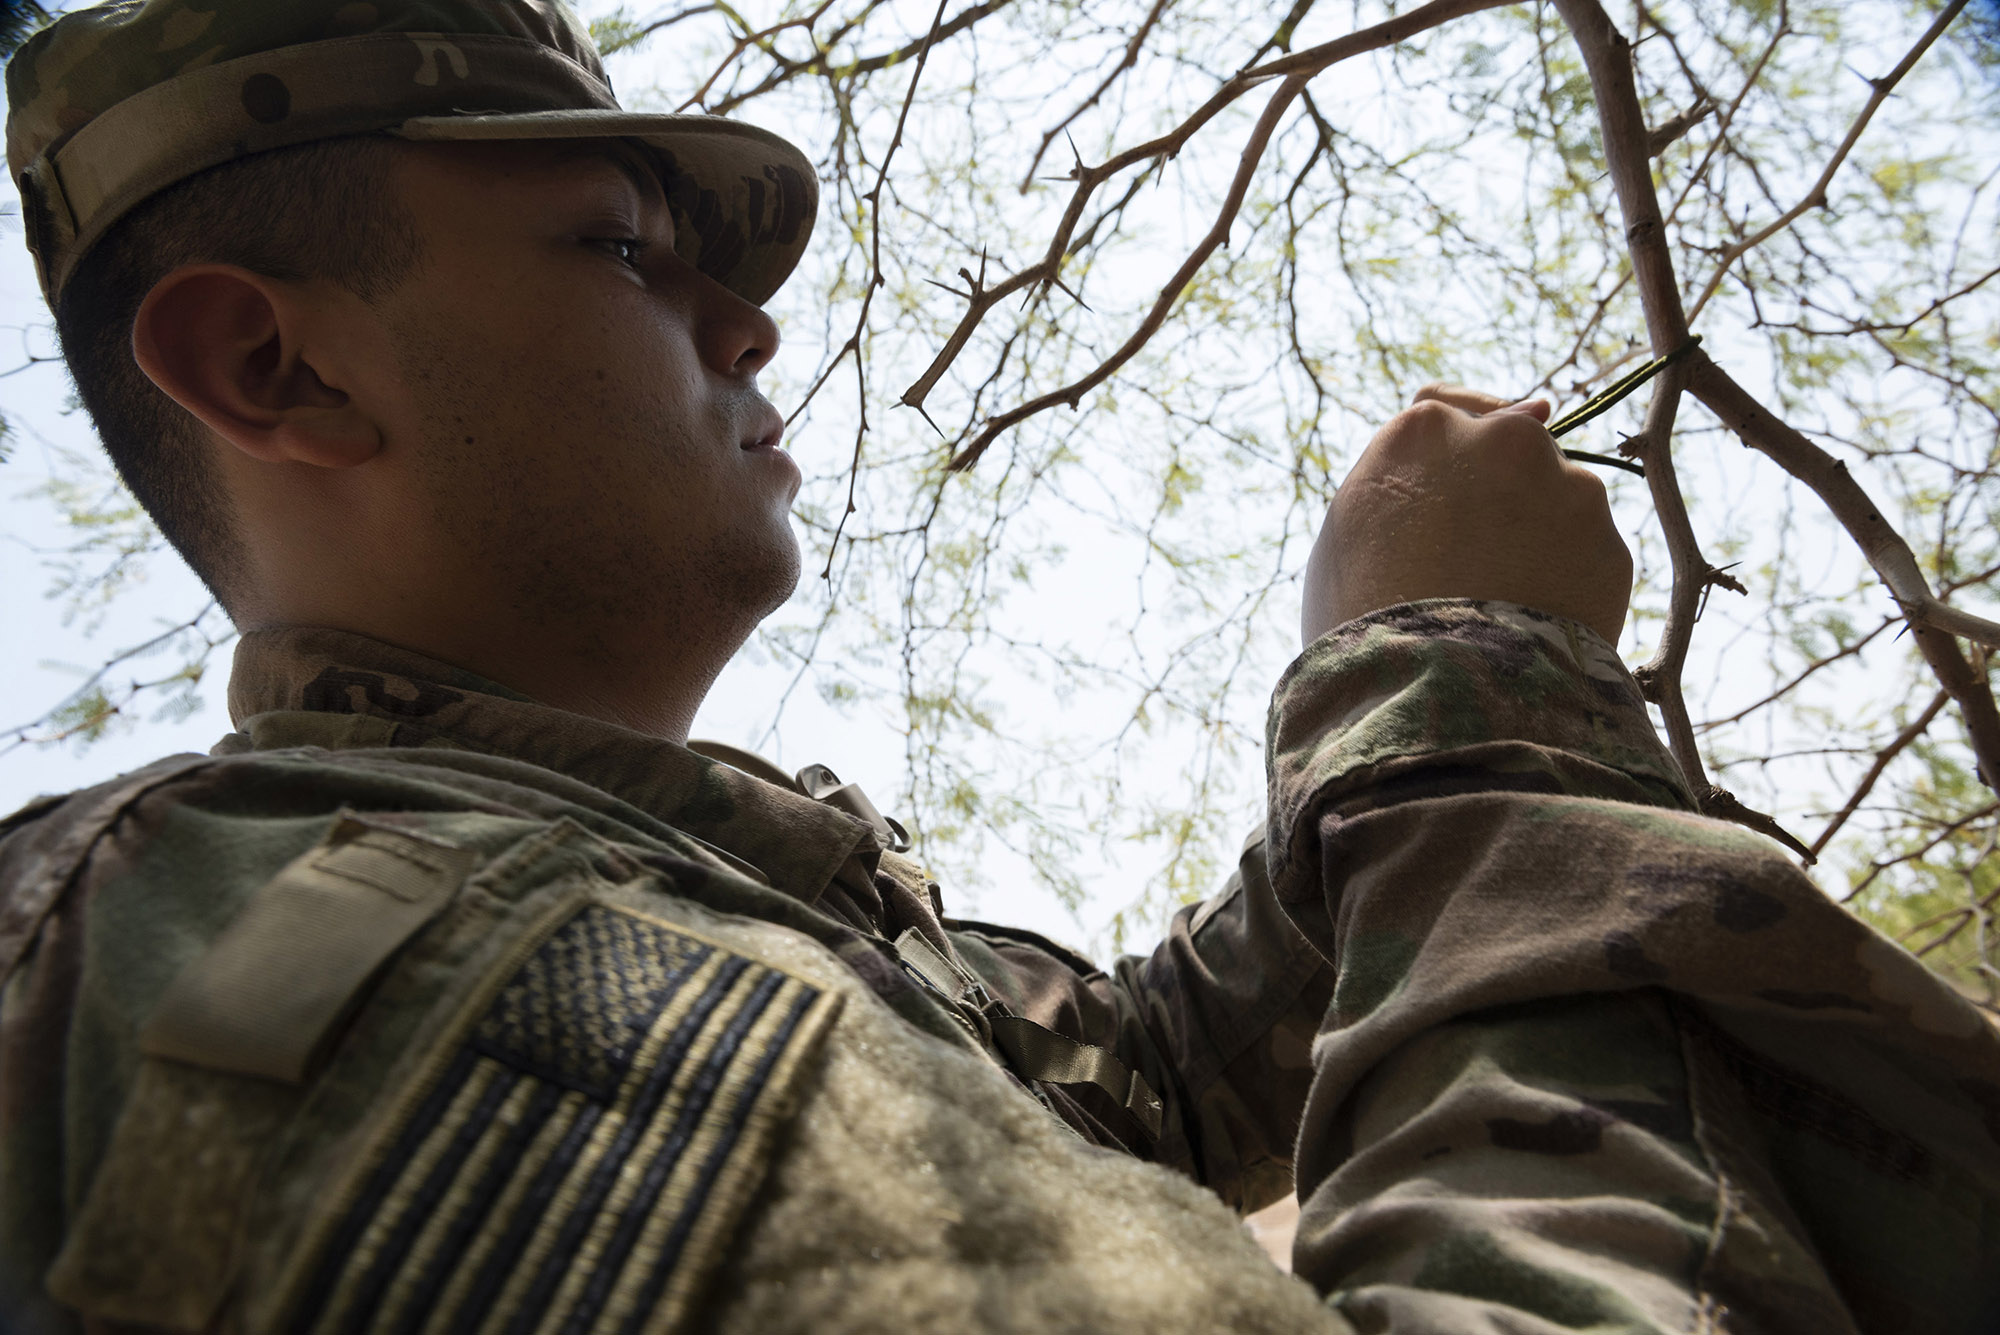 U.S. Army Pfc. Jonathan Galindo, a field artillery firefinder radar operator with 3rd Battalion, 133rd Field Artillery Regiment, Texas National Guard, practices tying various types of knots during survival skills training on Camp Lemonnier, Djibouti, Oct. 13, 2018. During this training, Galindo completed various tasks such as constructing a shelter, finding alternative water sources and signaling for rescue. (U.S. Air National Guard photo by Master Sgt. Sarah Mattison)